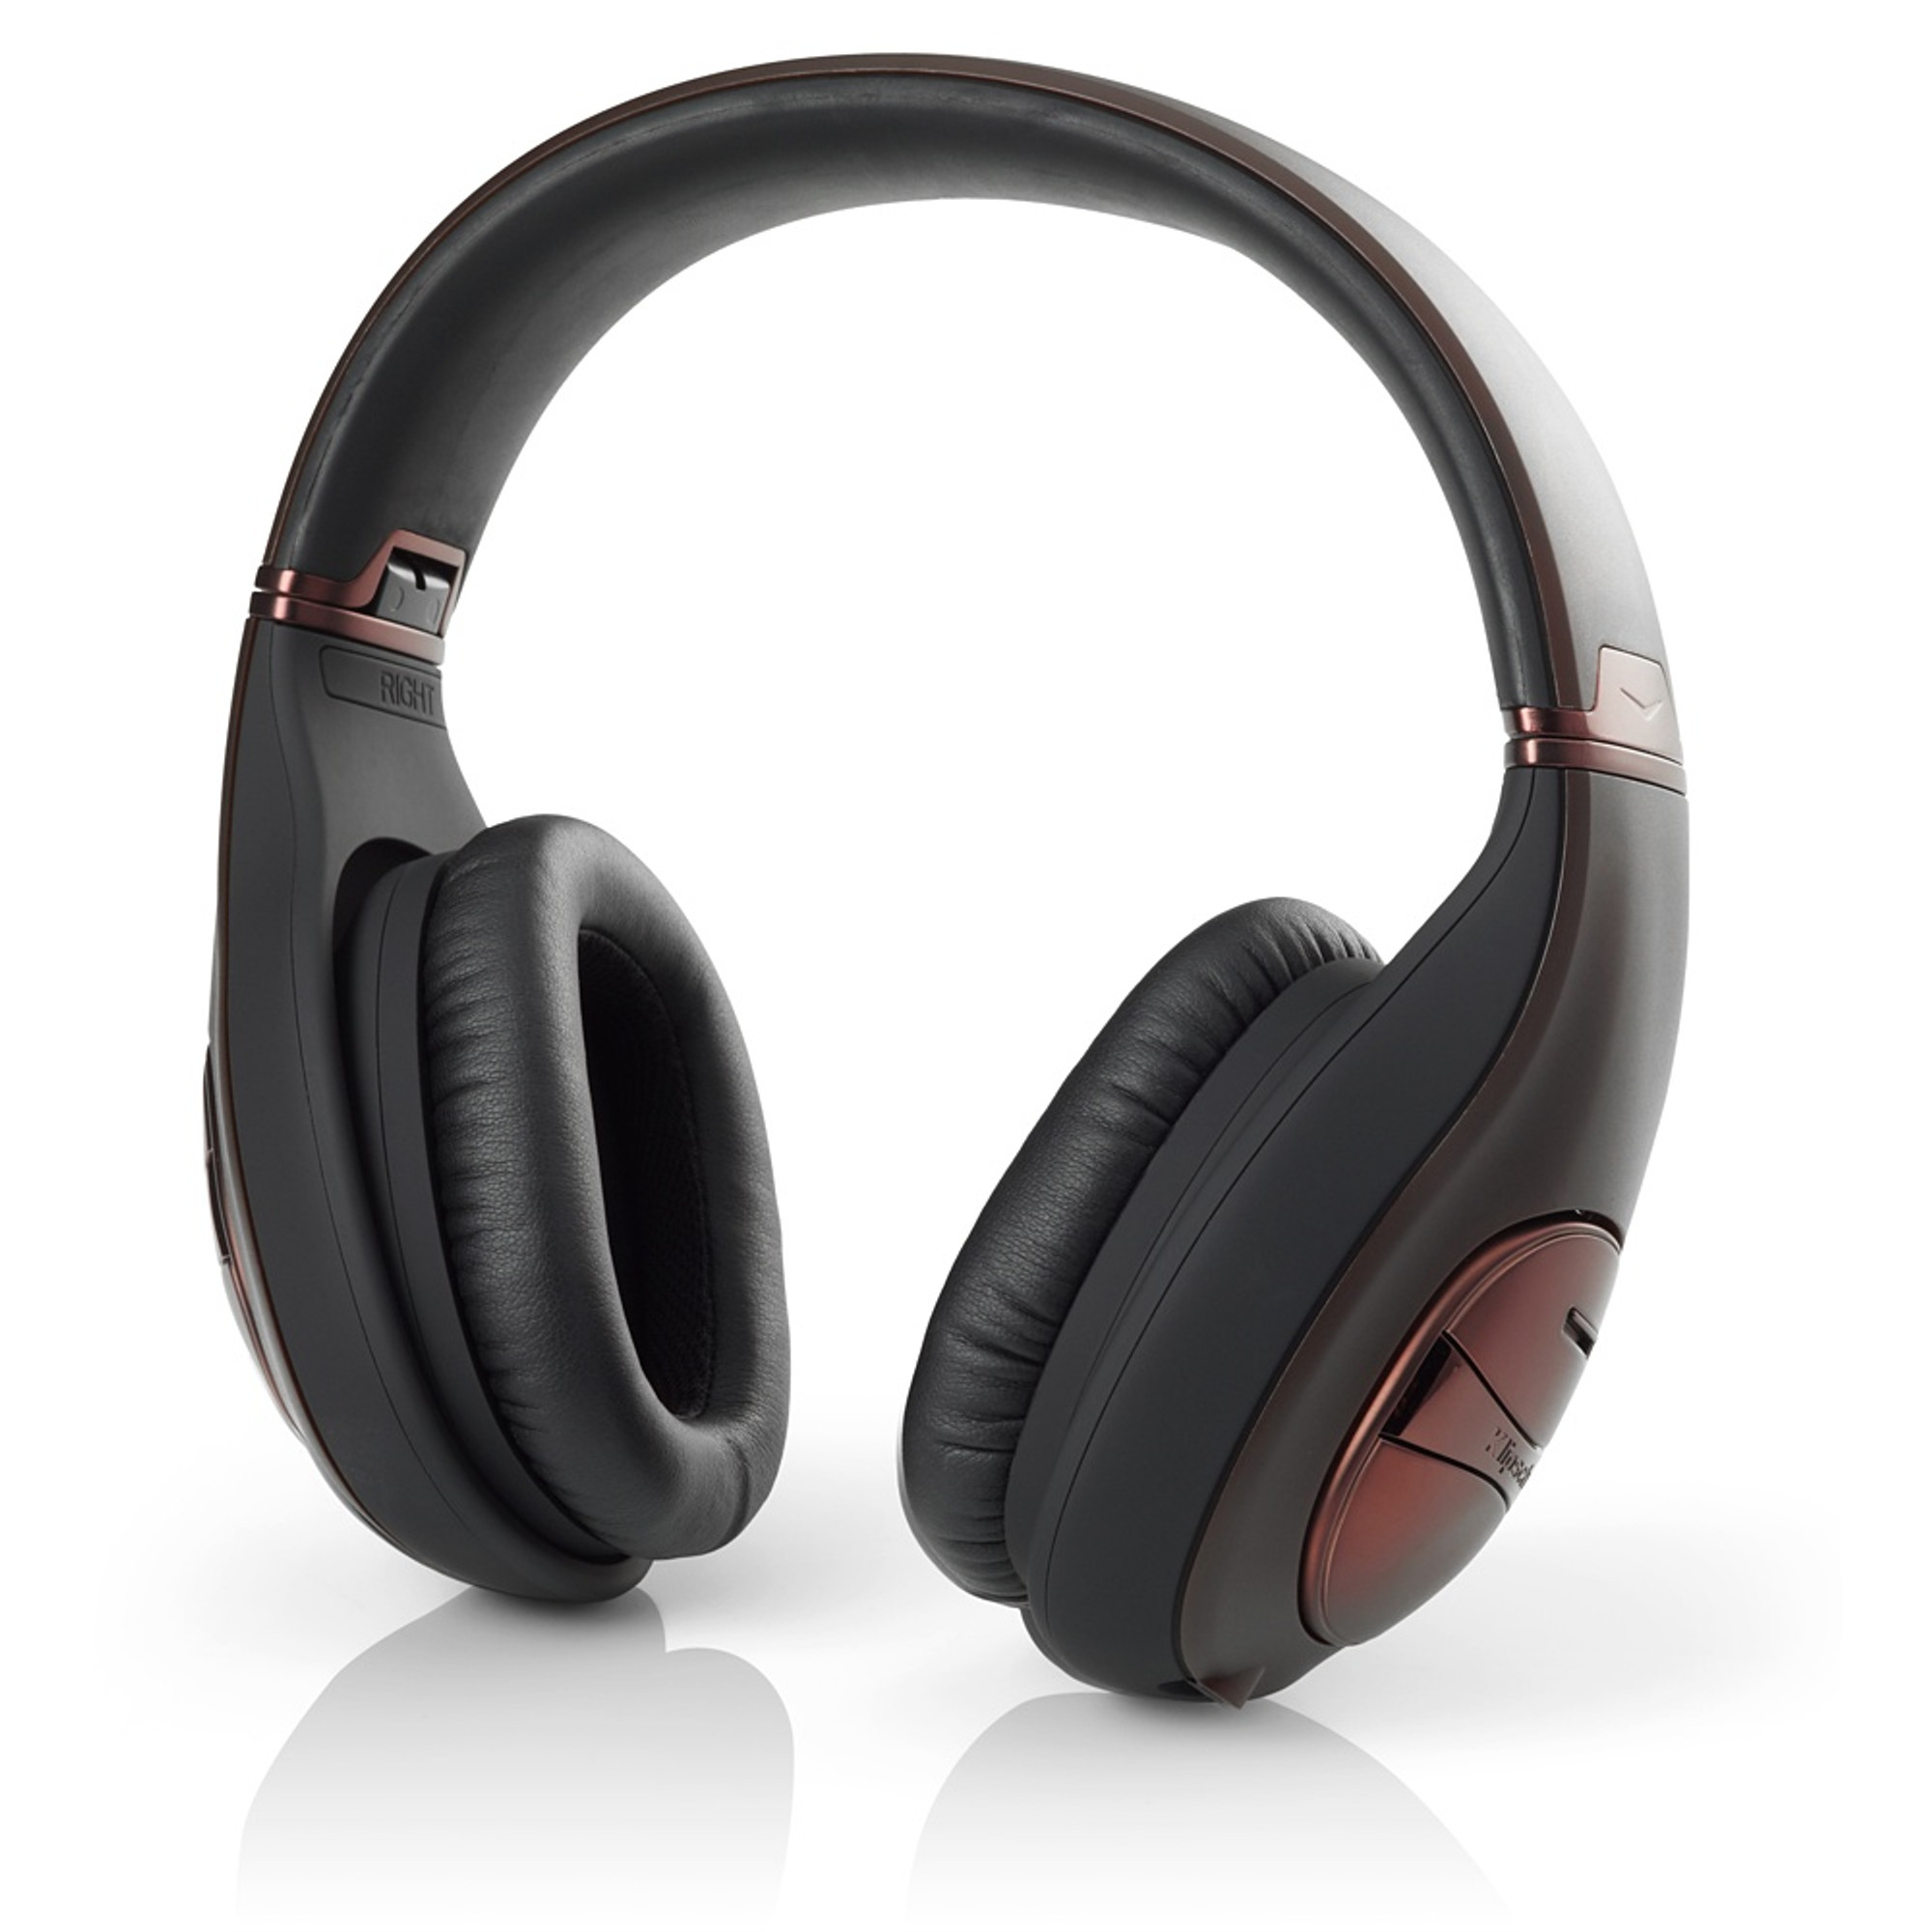 Earphones noise canceling wired - earphones noise cancelling wired